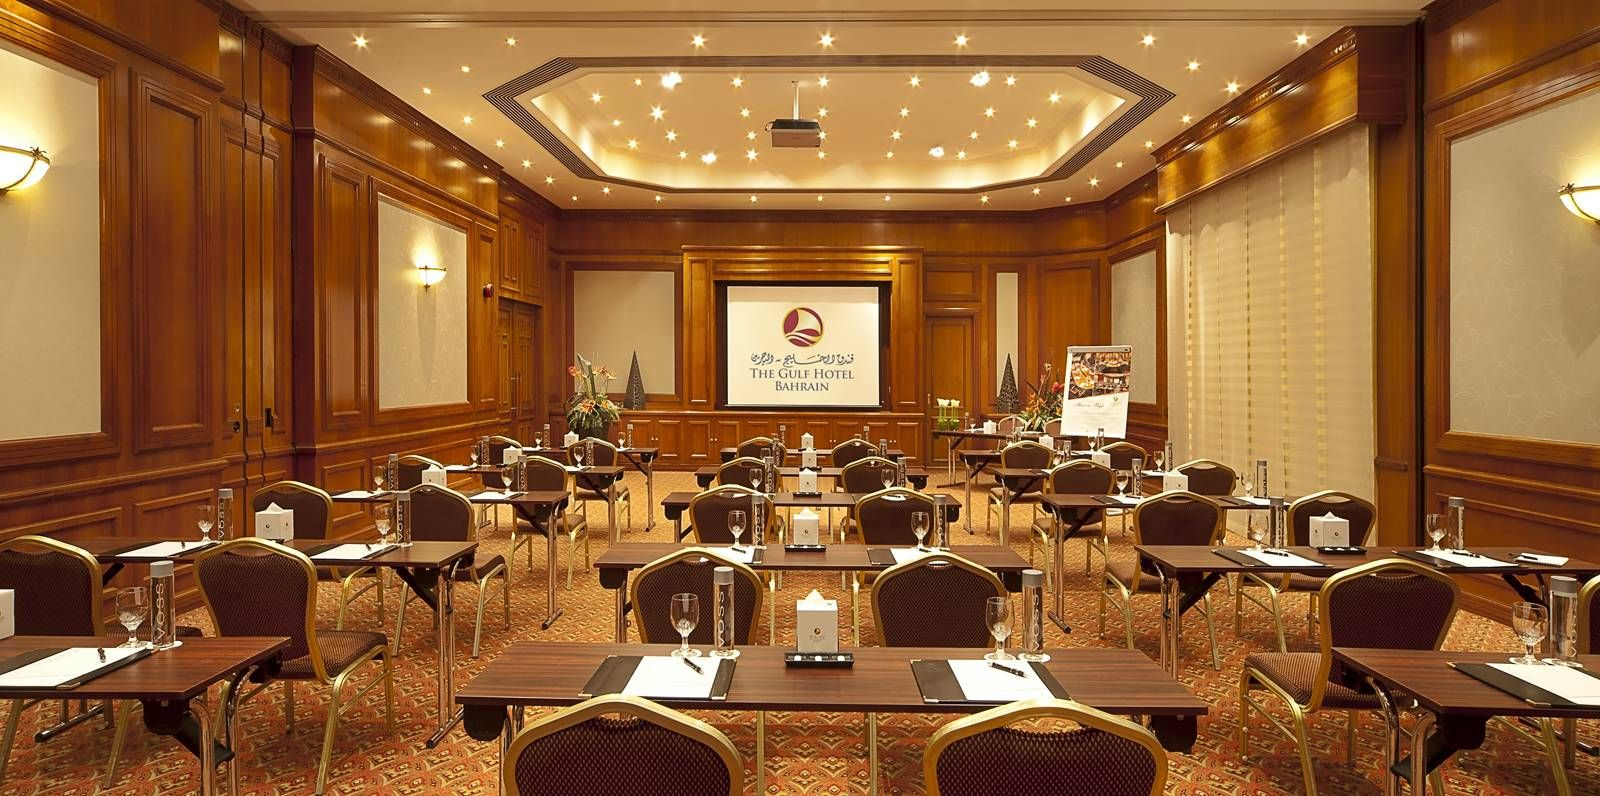 Gulf Hotel Bahrain Theater Style Meeting Room